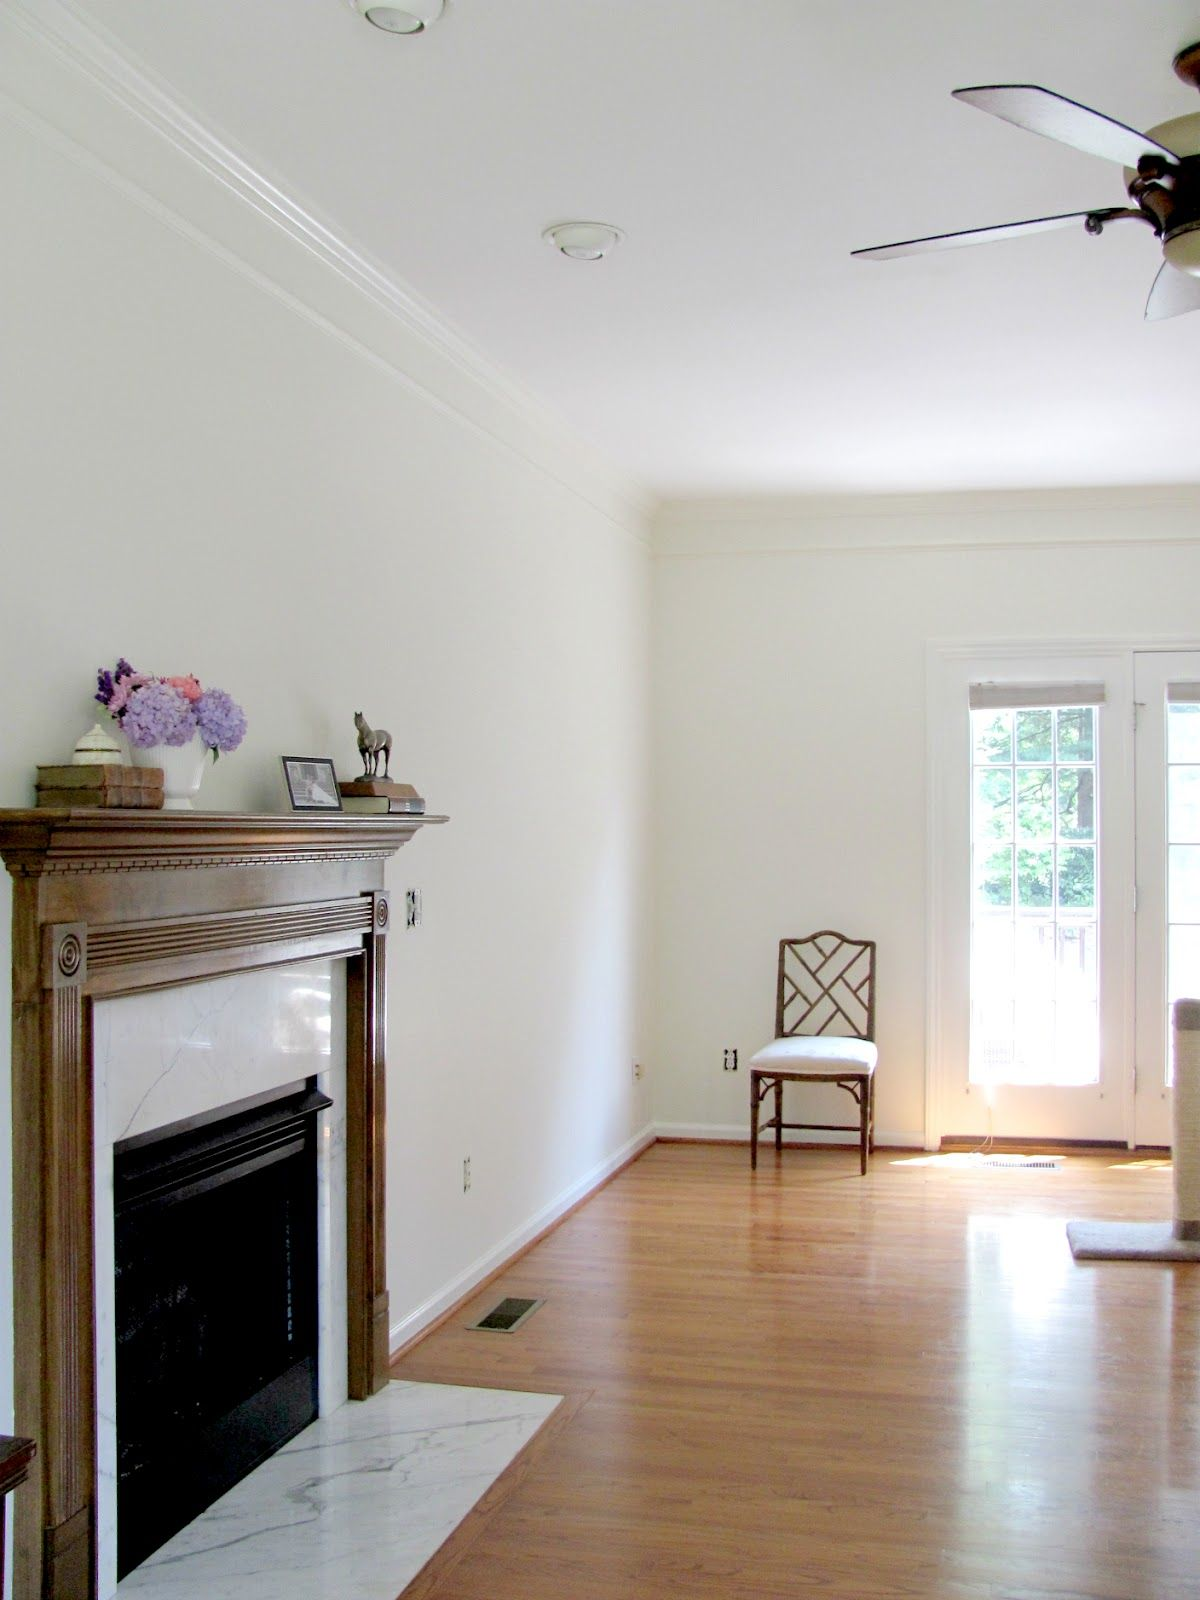 Walls benjamin moore acadia white oc 38 in eggshell crown molding sherwin williams dover white Paint of wall